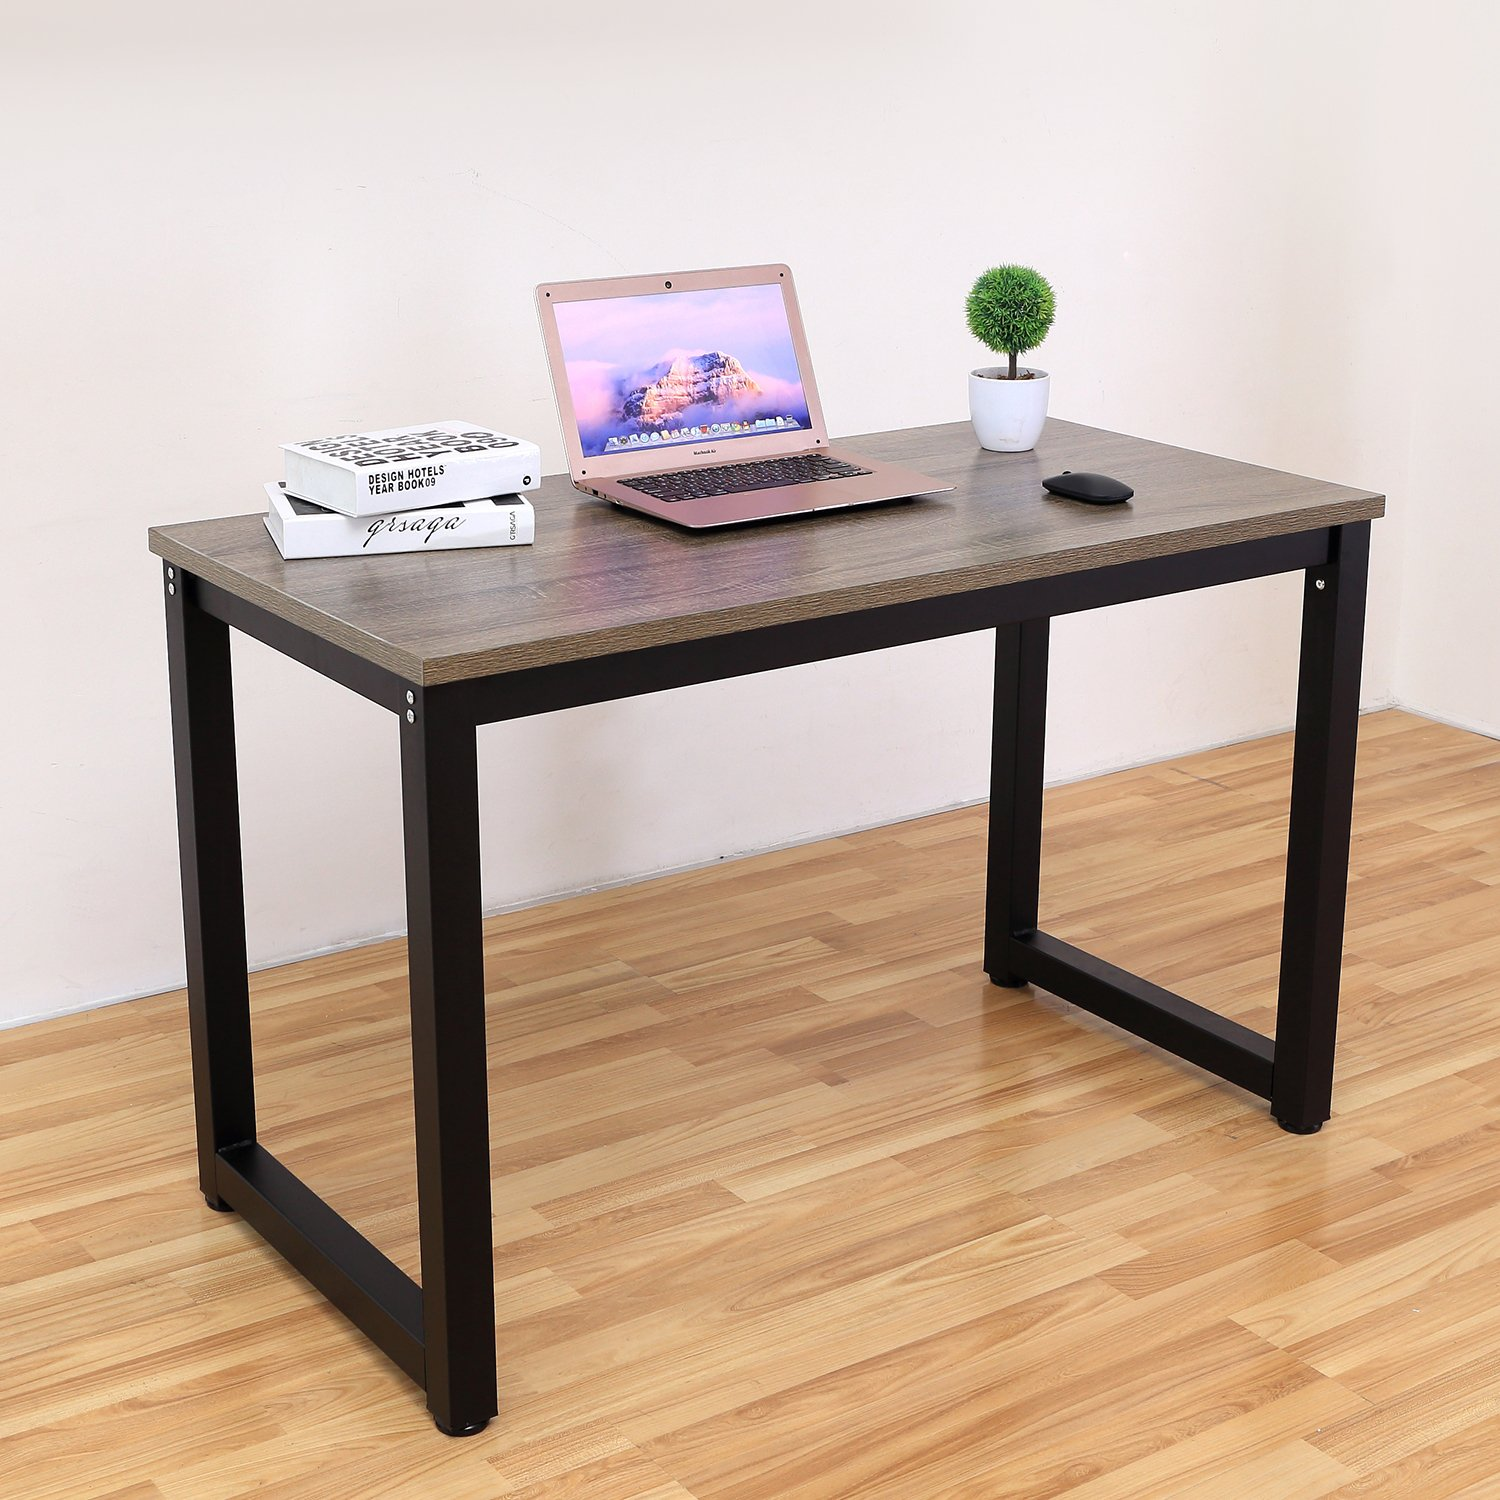 Decho 47'' Modern Simple Style Computer Desk PC Laptop Study Table Workstation for Home Office,(Dark Oak)